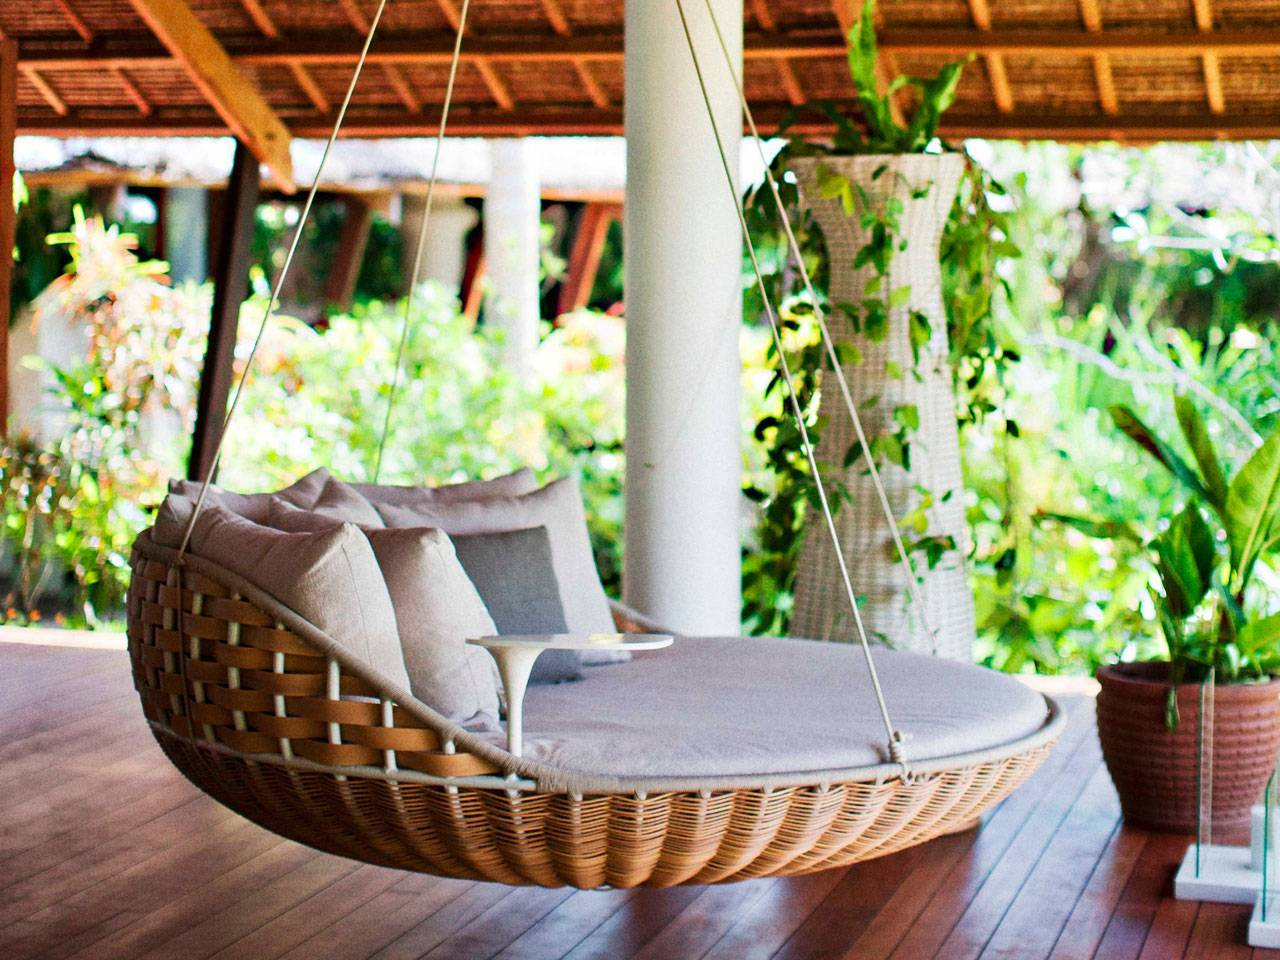 Cool And Simple Patio Swings Decoration – Interior Design Intended For Outdoor Porch Swings (View 4 of 25)